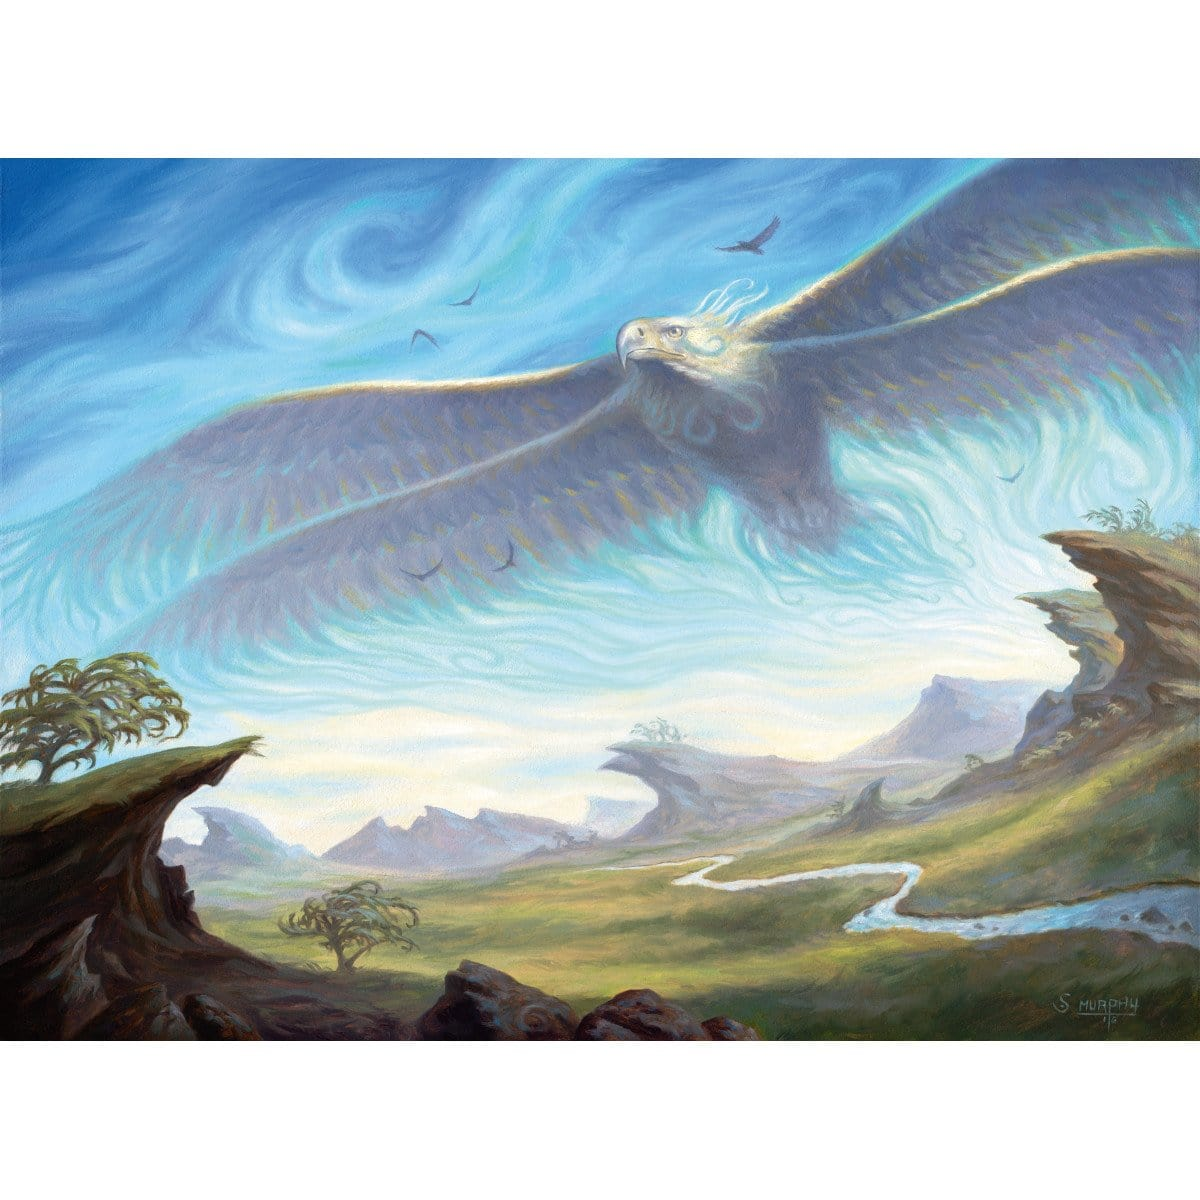 Aetherstorm Roc Print - Print - Original Magic Art - Accessories for Magic the Gathering and other card games